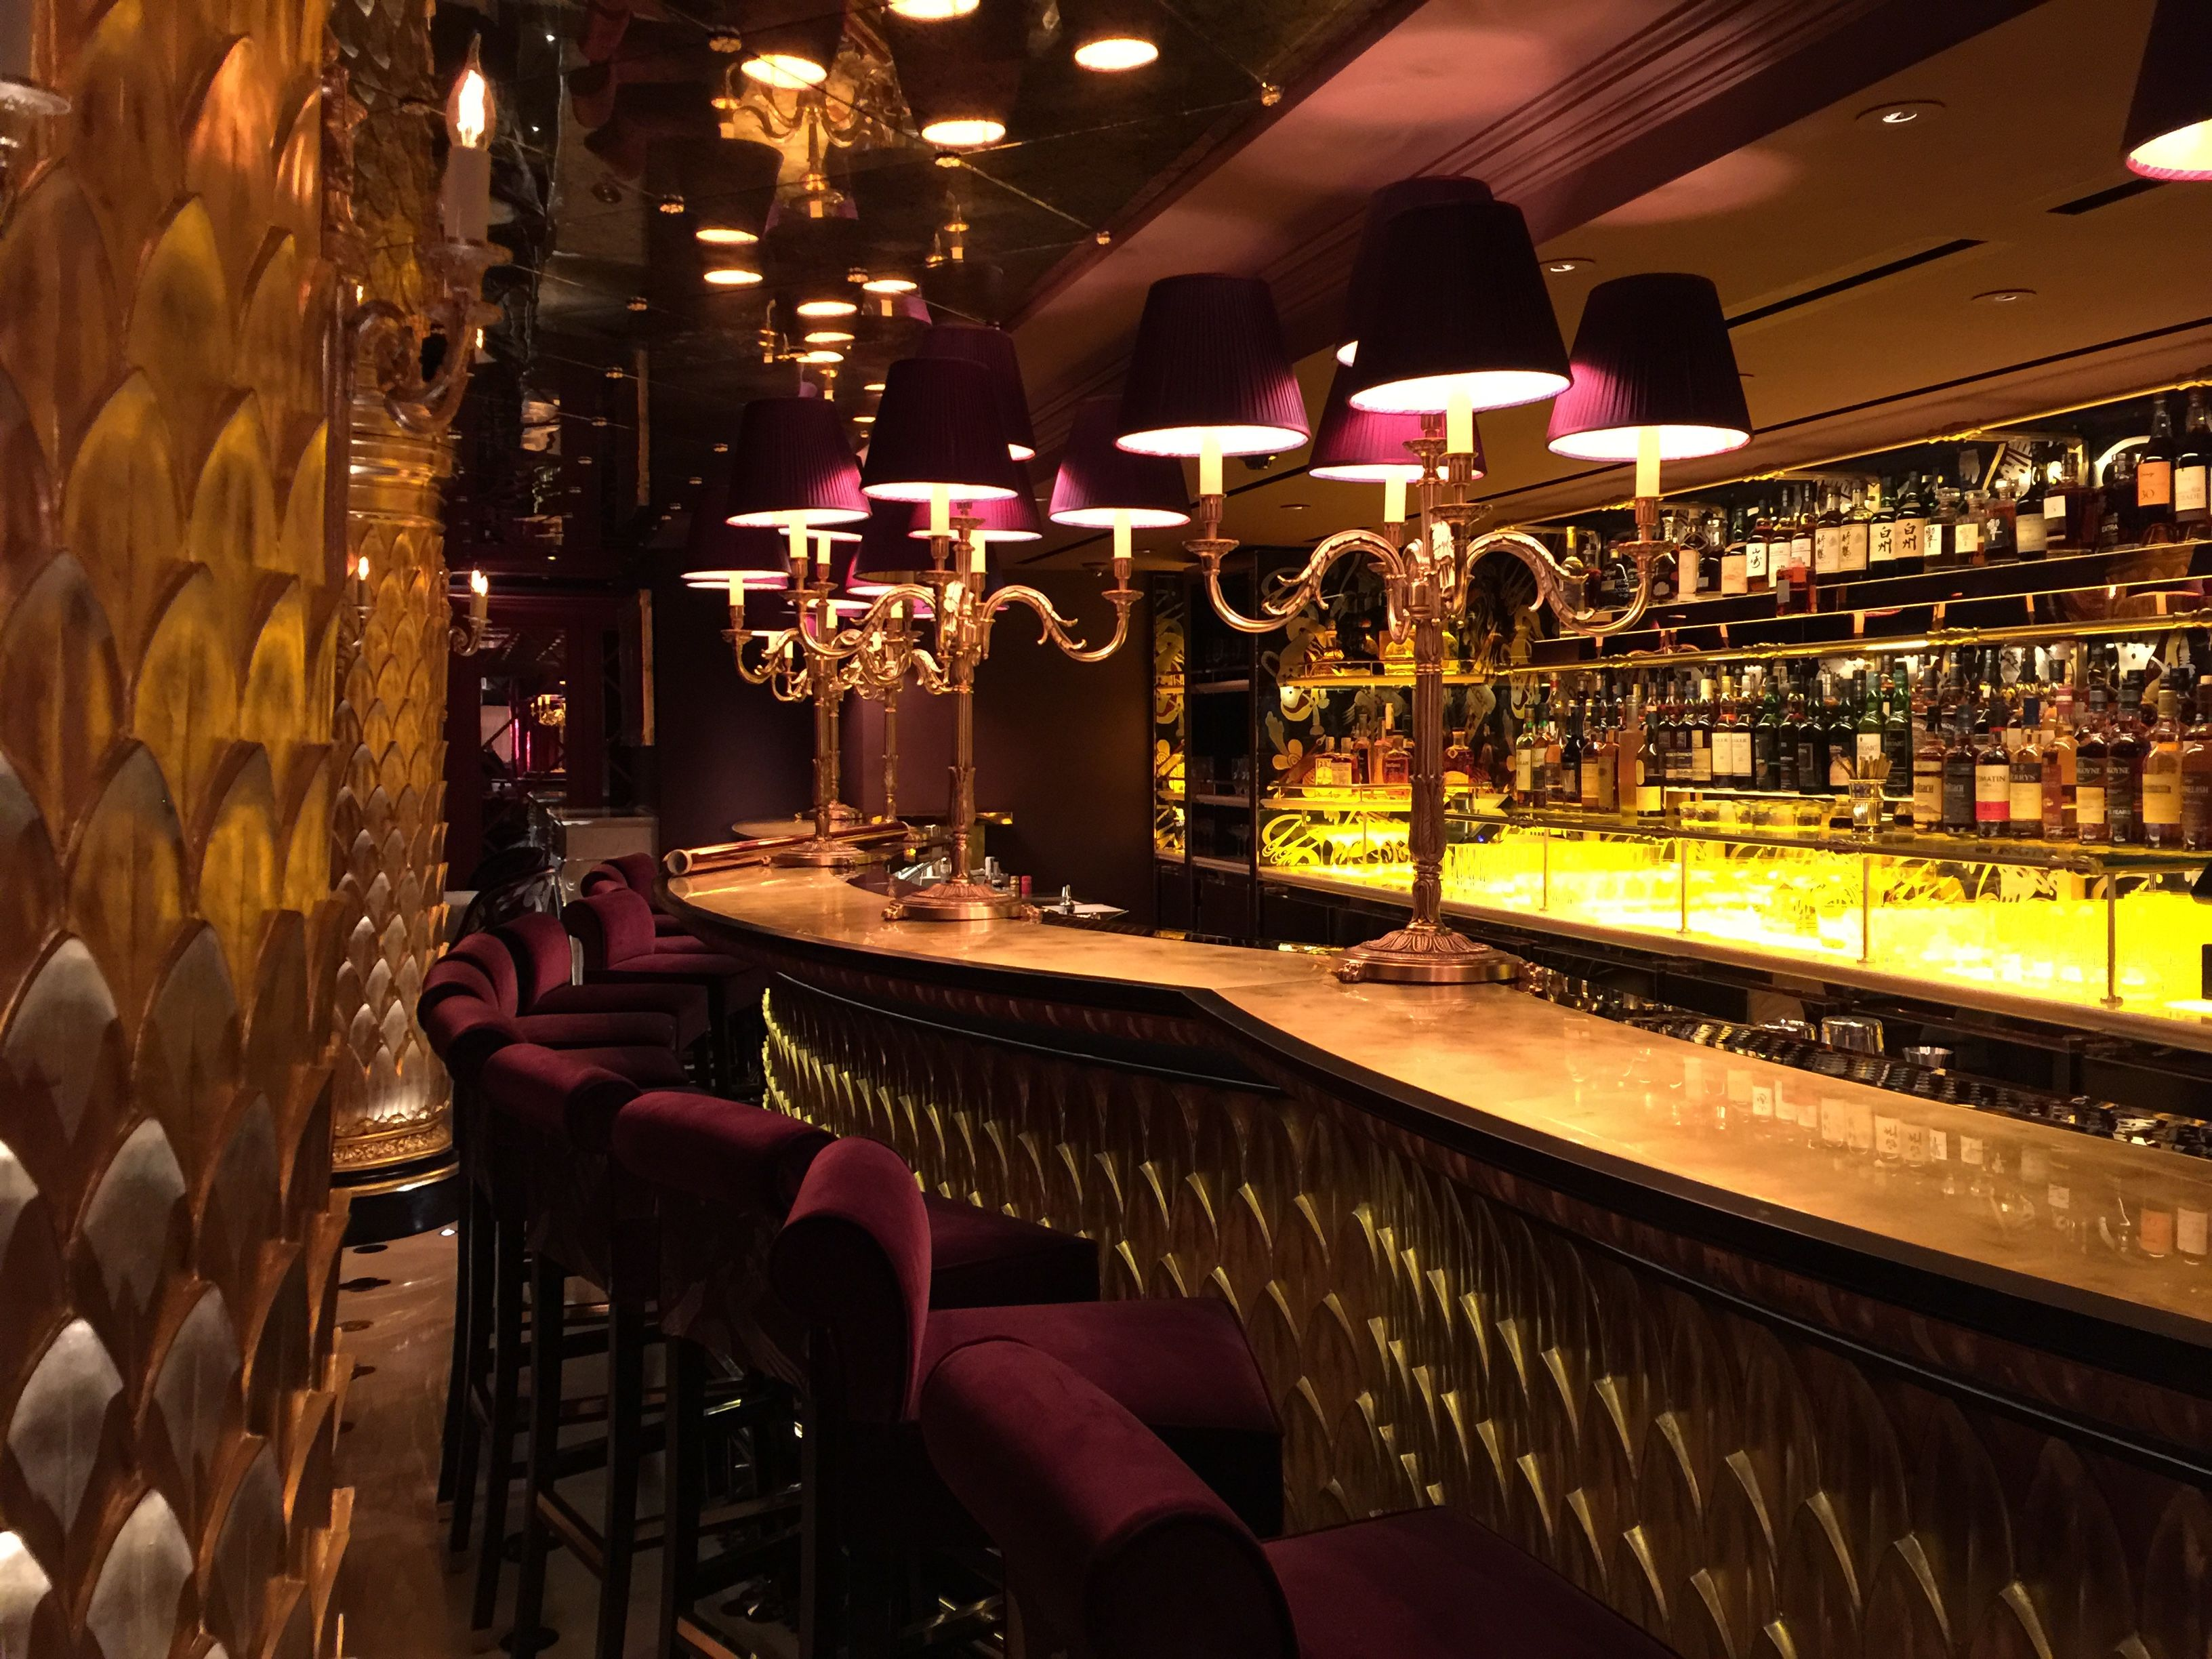 Home luxury romantic restaurant interior design of asia de cuba at - Bar At Park Chinois London With Lighting By Light Iq